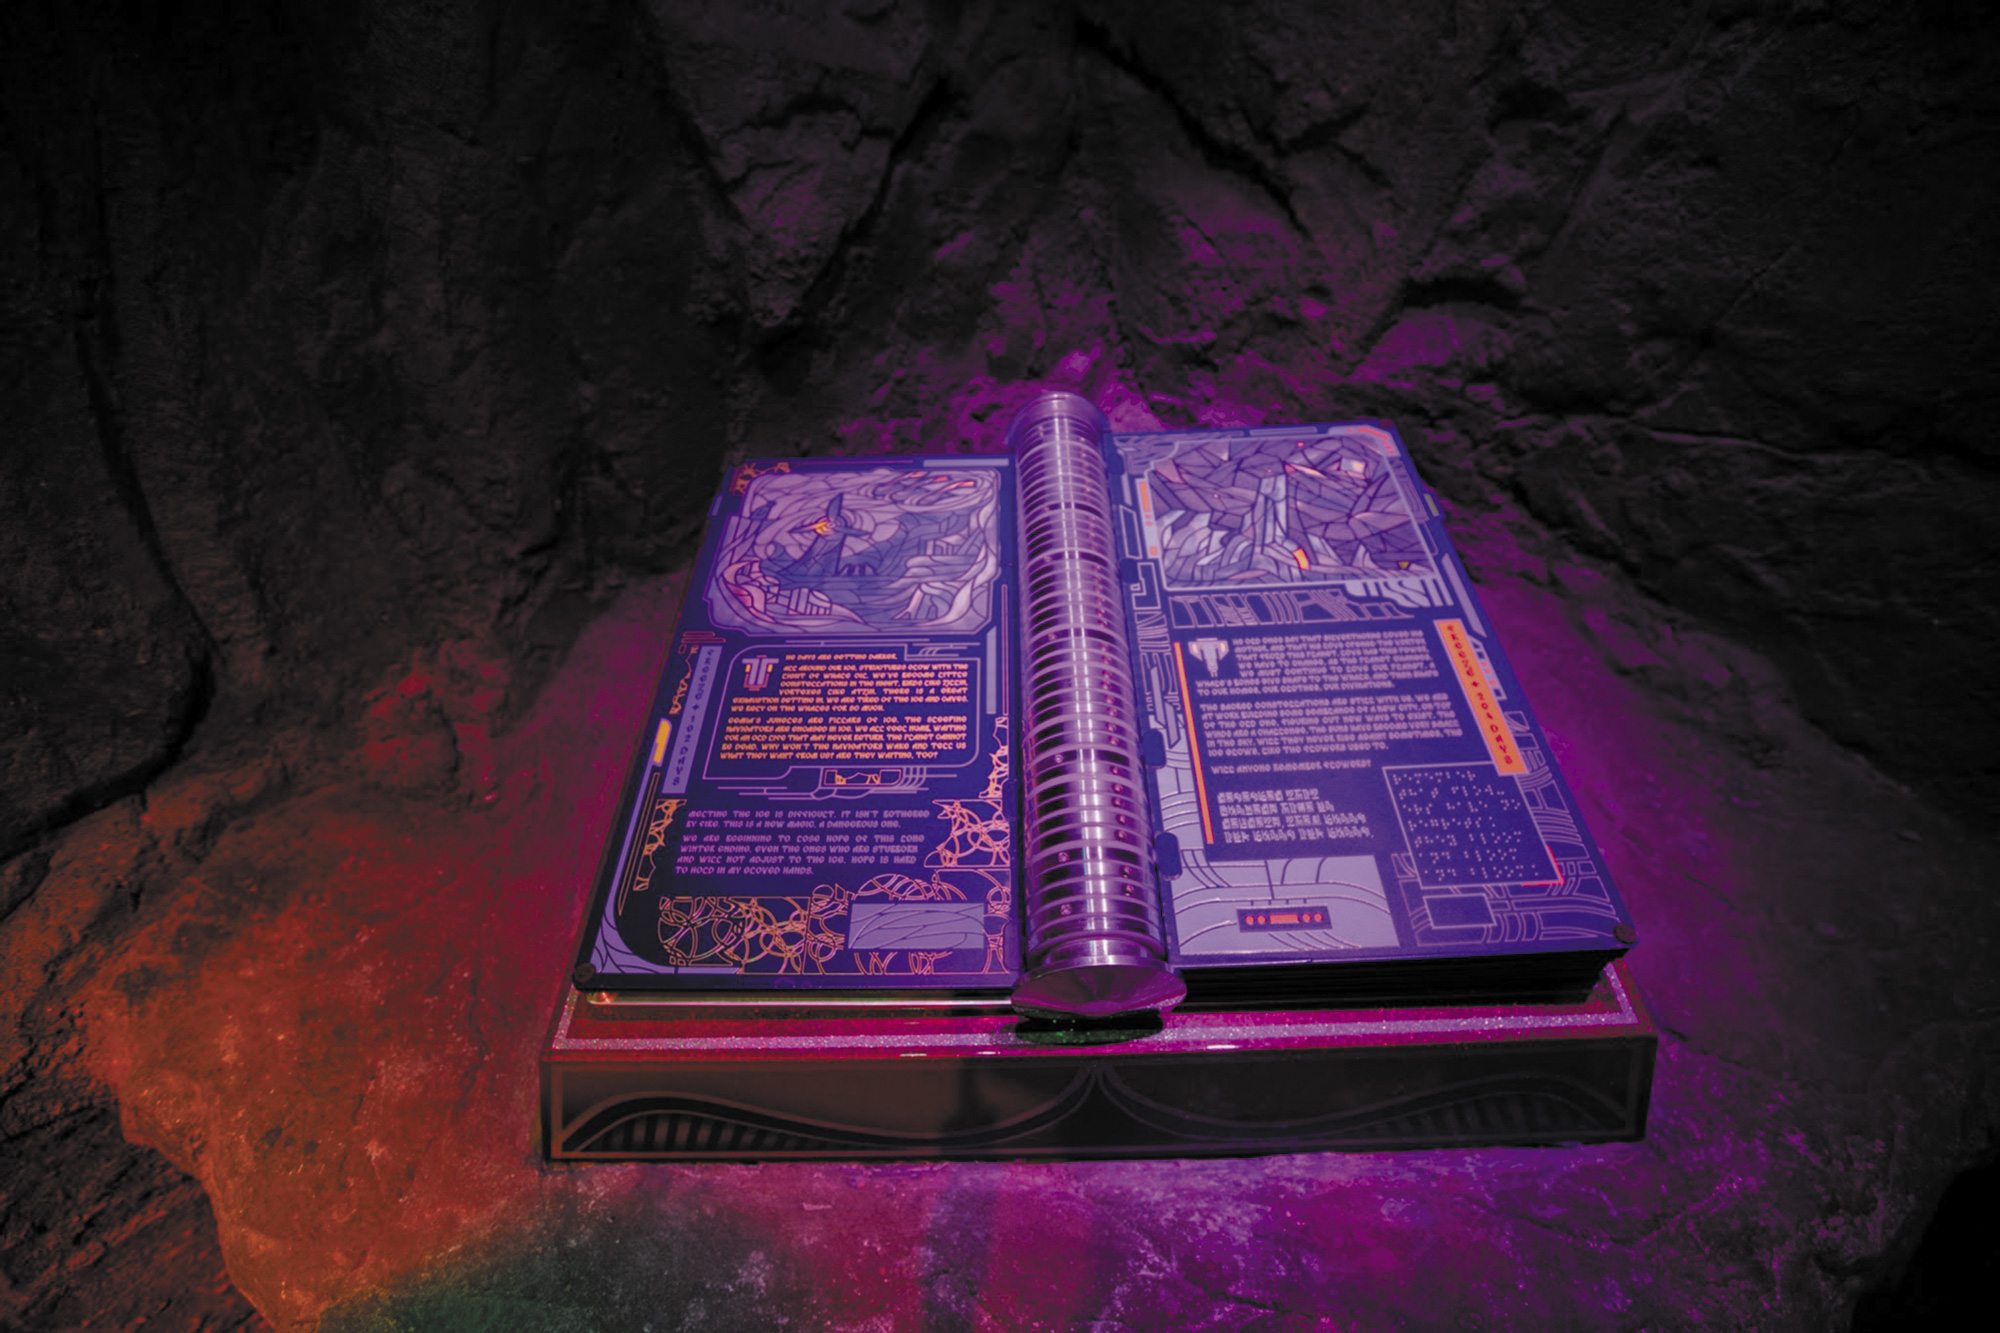 The-Book-of-Whales-_-Lead-Artists--Luke-Dorman,-Julian-Williams,-Josh-Myers-_-Photo-by-Kate-Russell_Meow Wolf: A Look into the 4 Converged Worlds by Jordan Rumsey